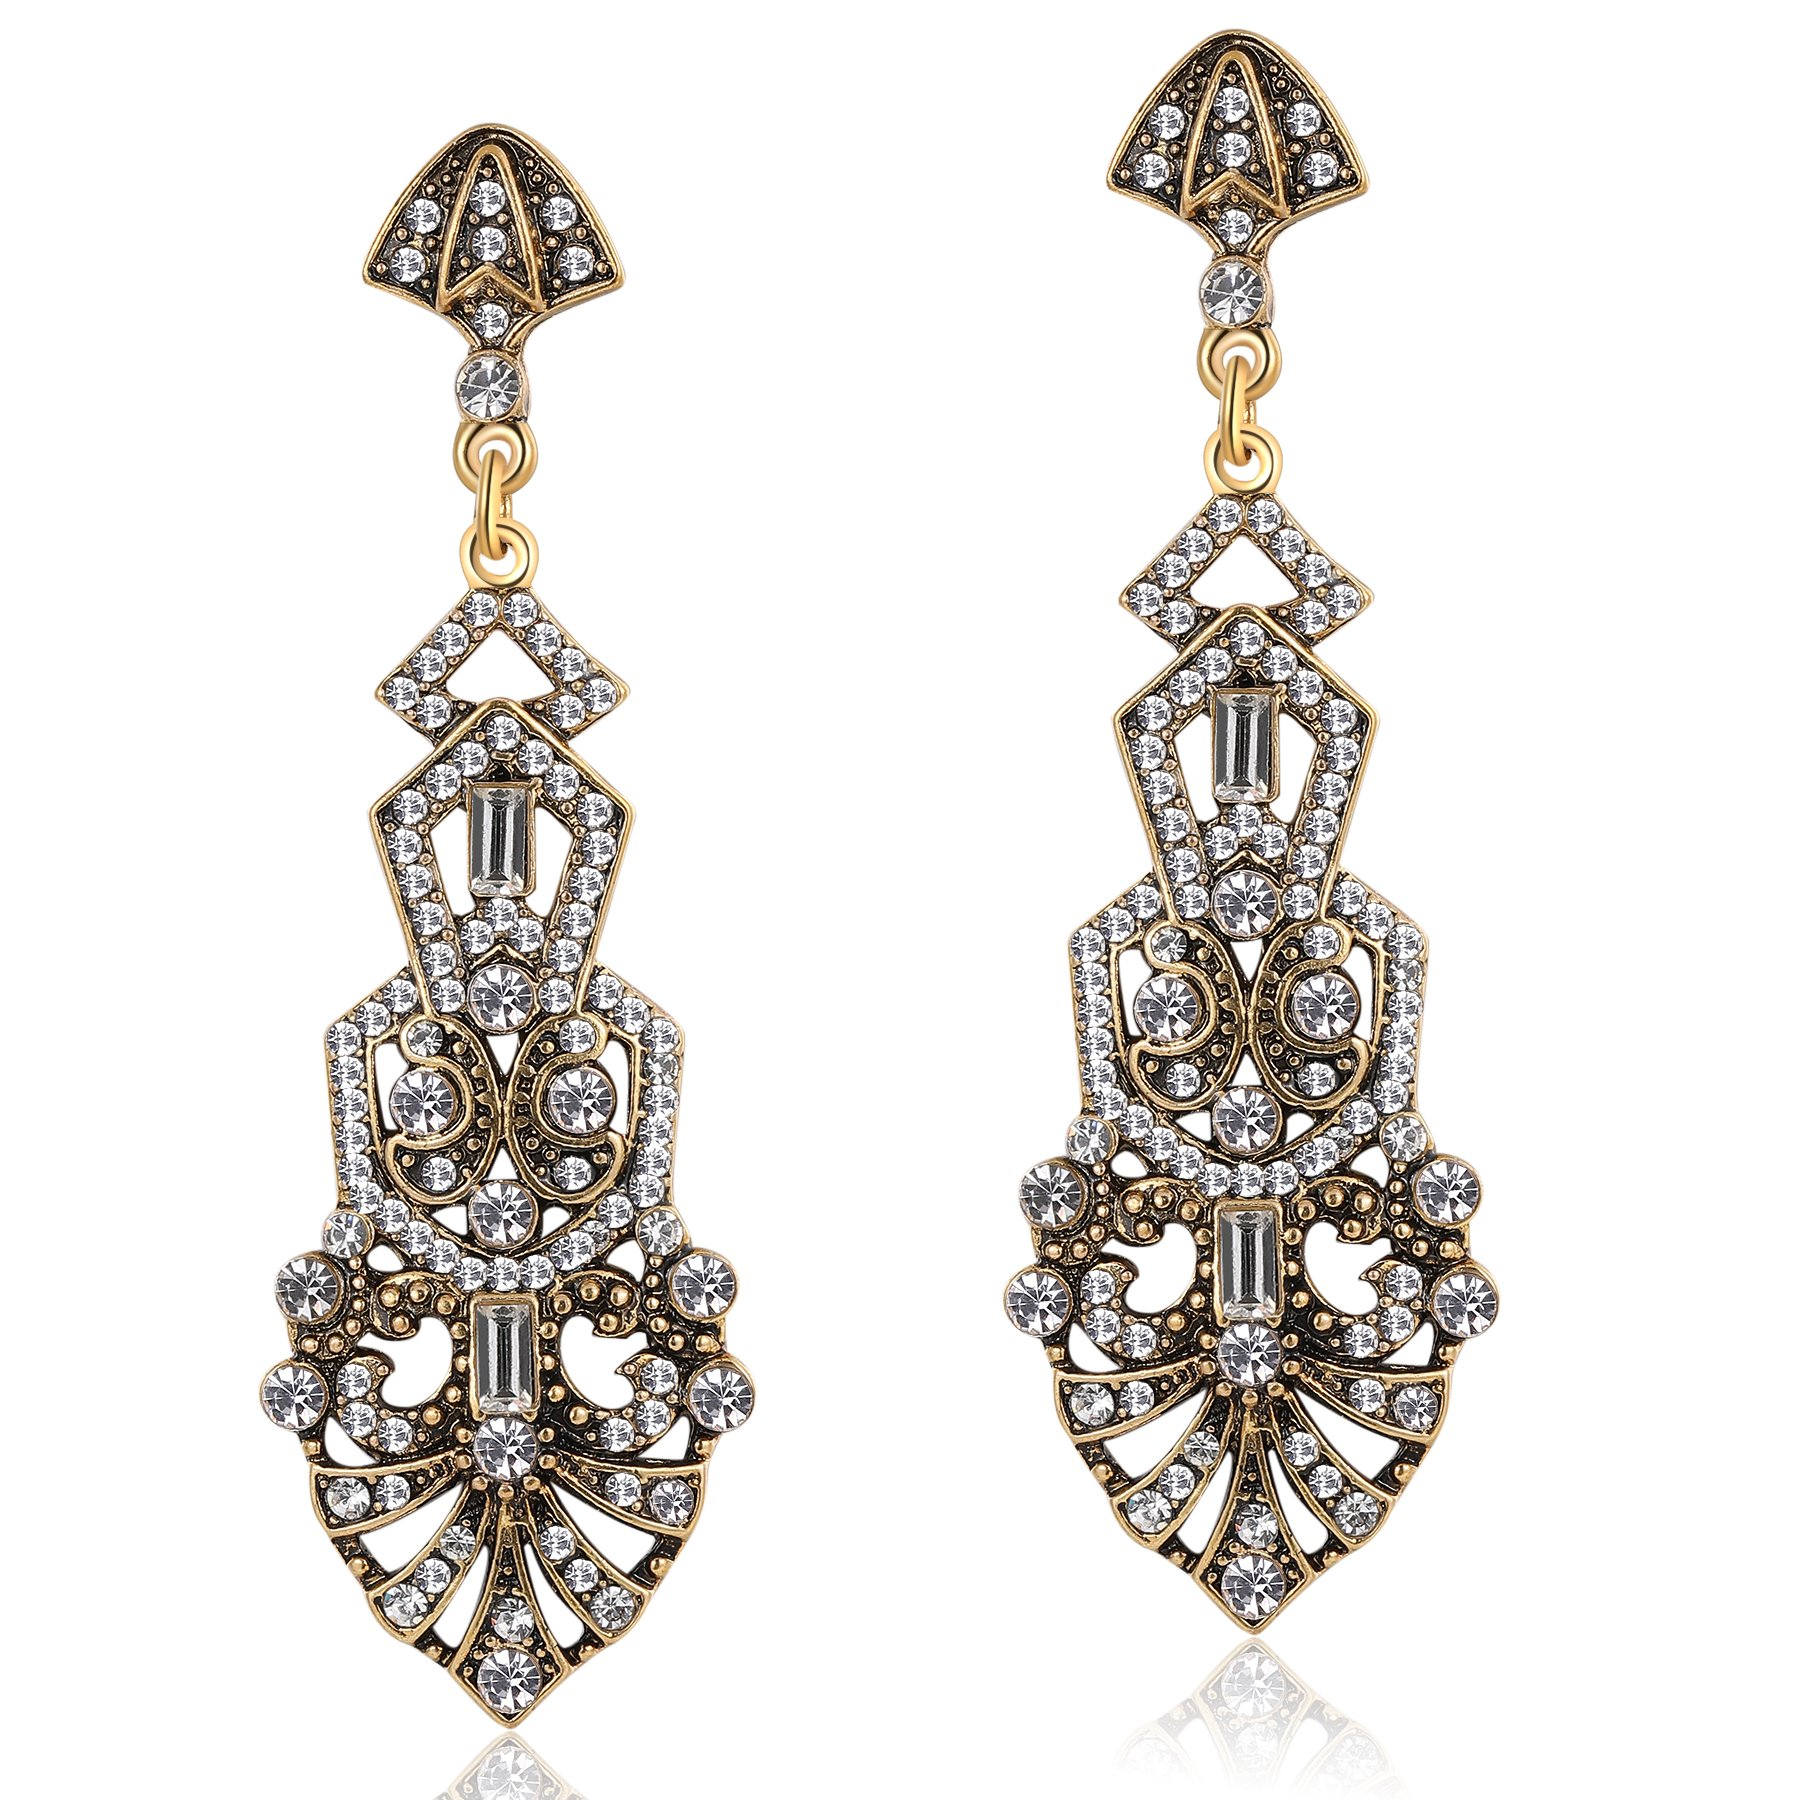 BABEYOND 1920s Flapper Earrings Roaring 20s Great Gatsby Crystal Rhinestone Earrings Vintage 20s Flapper Gatsby Costume Accessories (Style 2-Gold